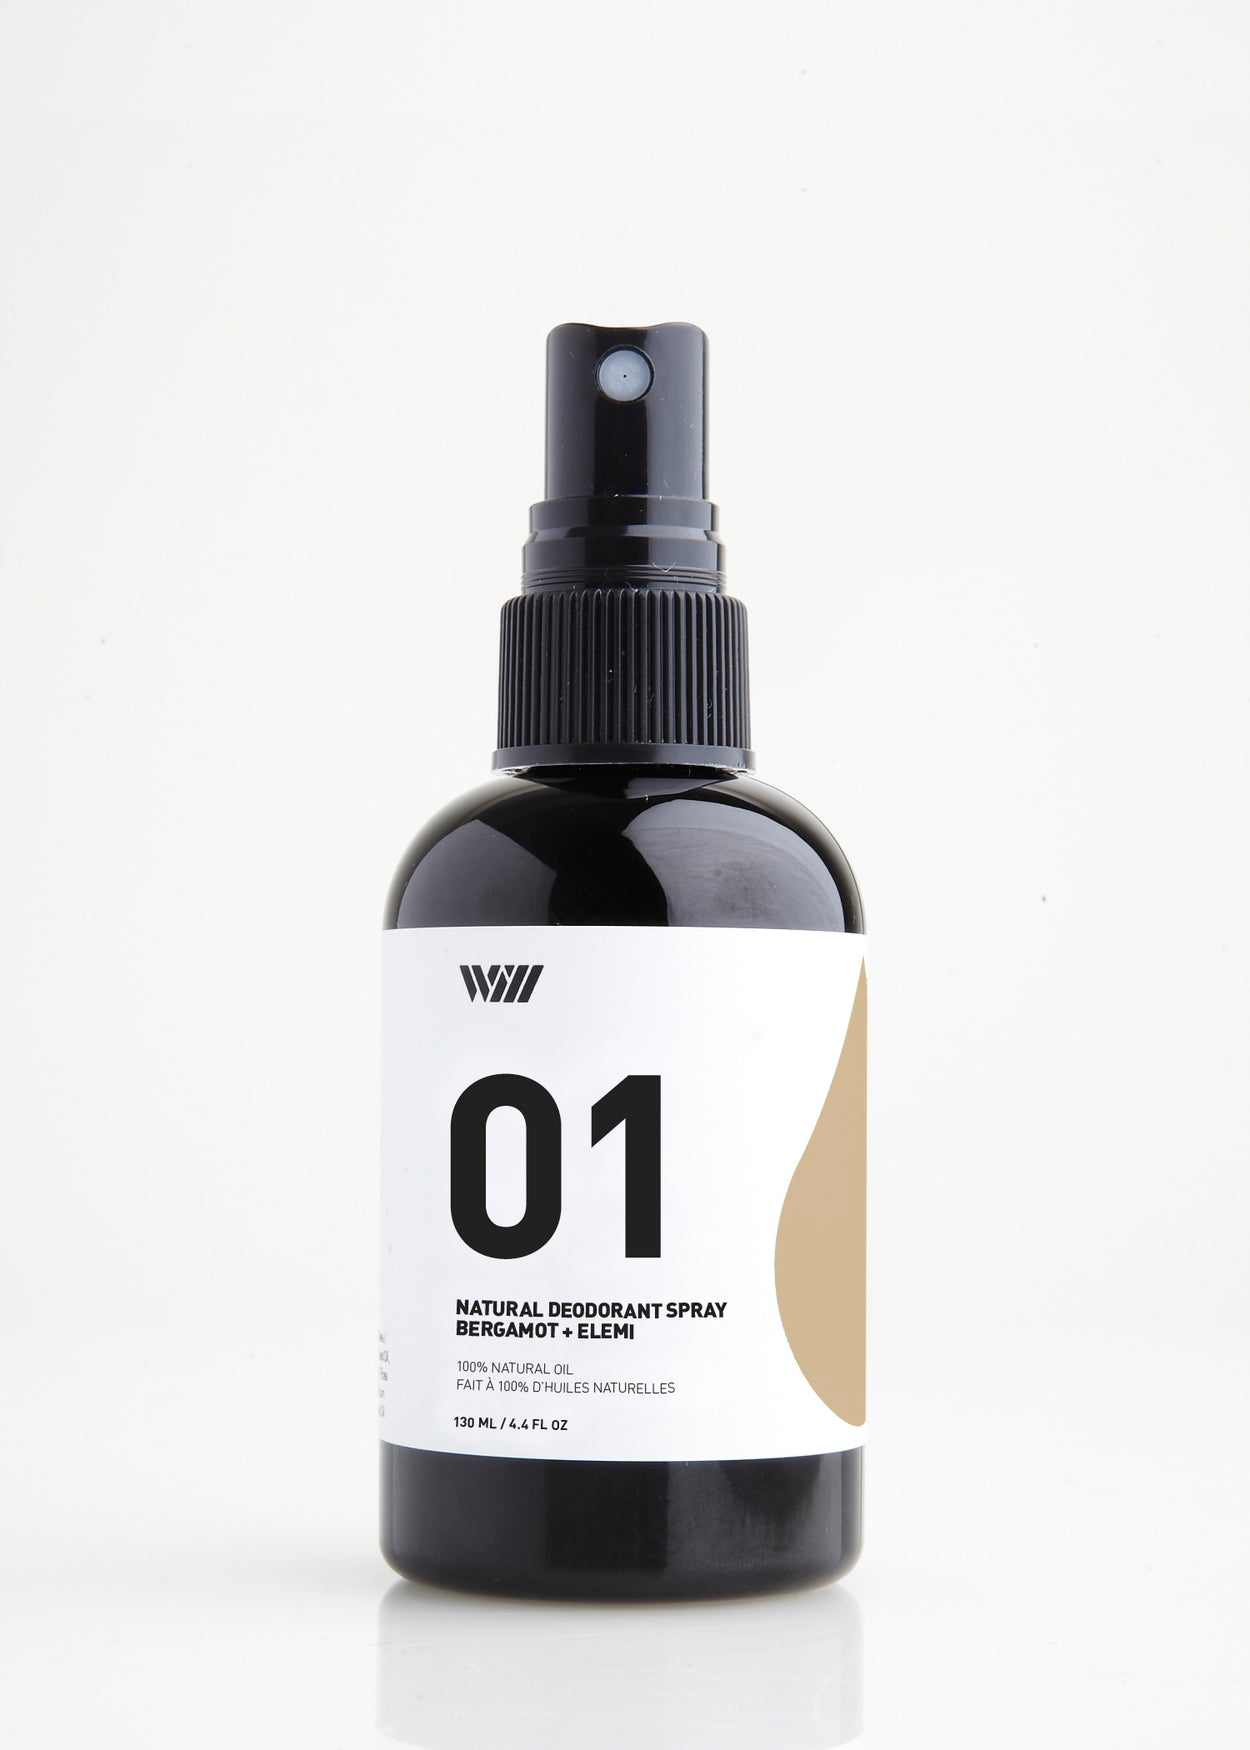 01 Natural Deodorant Spray| Bergamot + Elemi